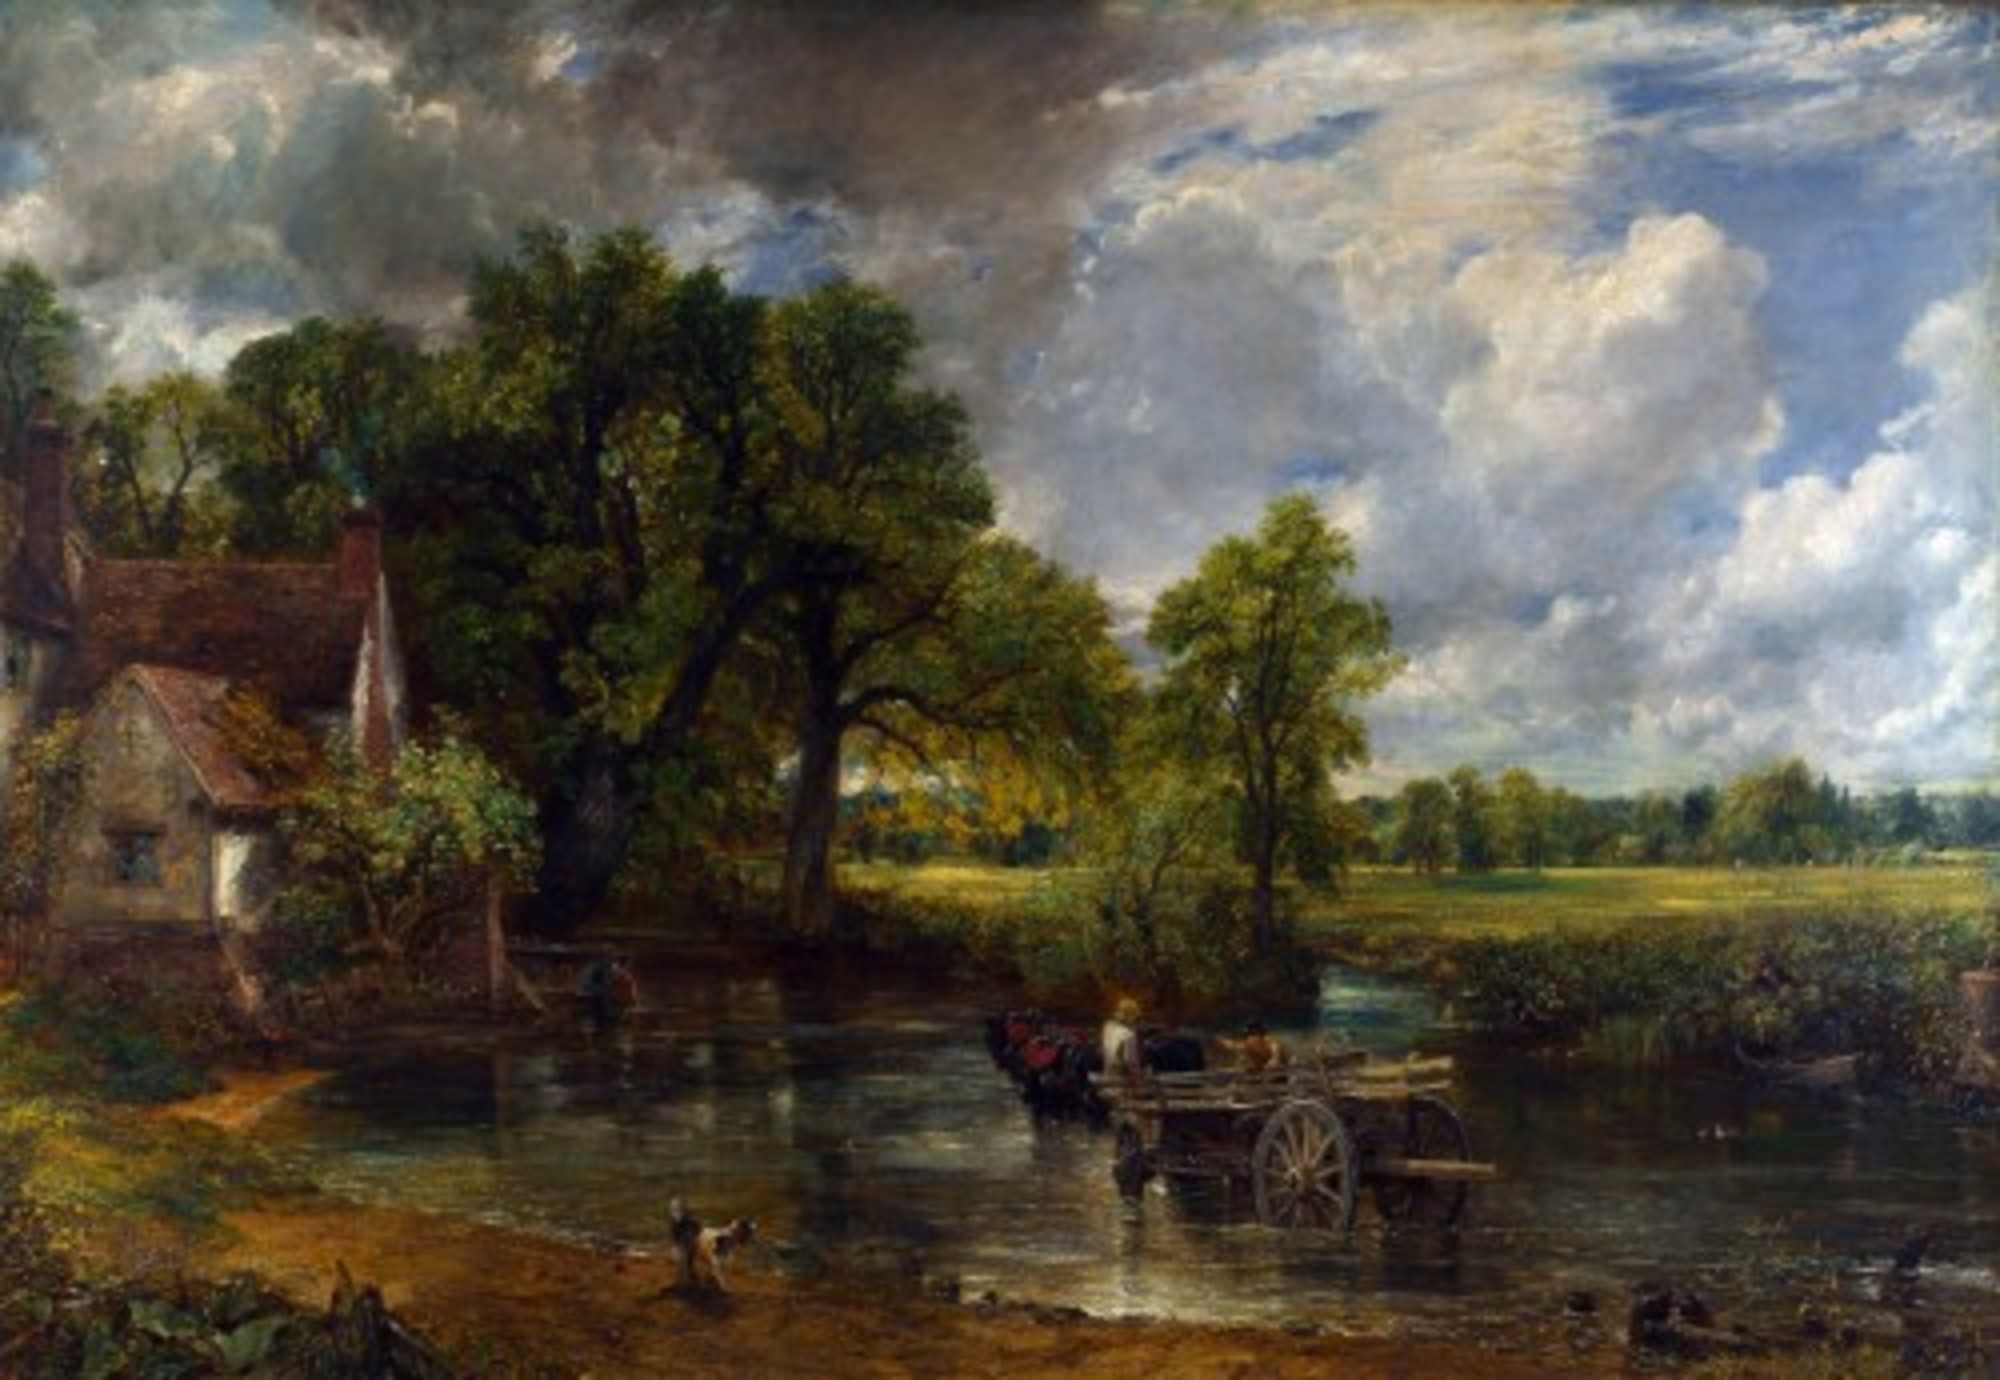 John_Constable_-_The_Hay_Wain_1821.jpg